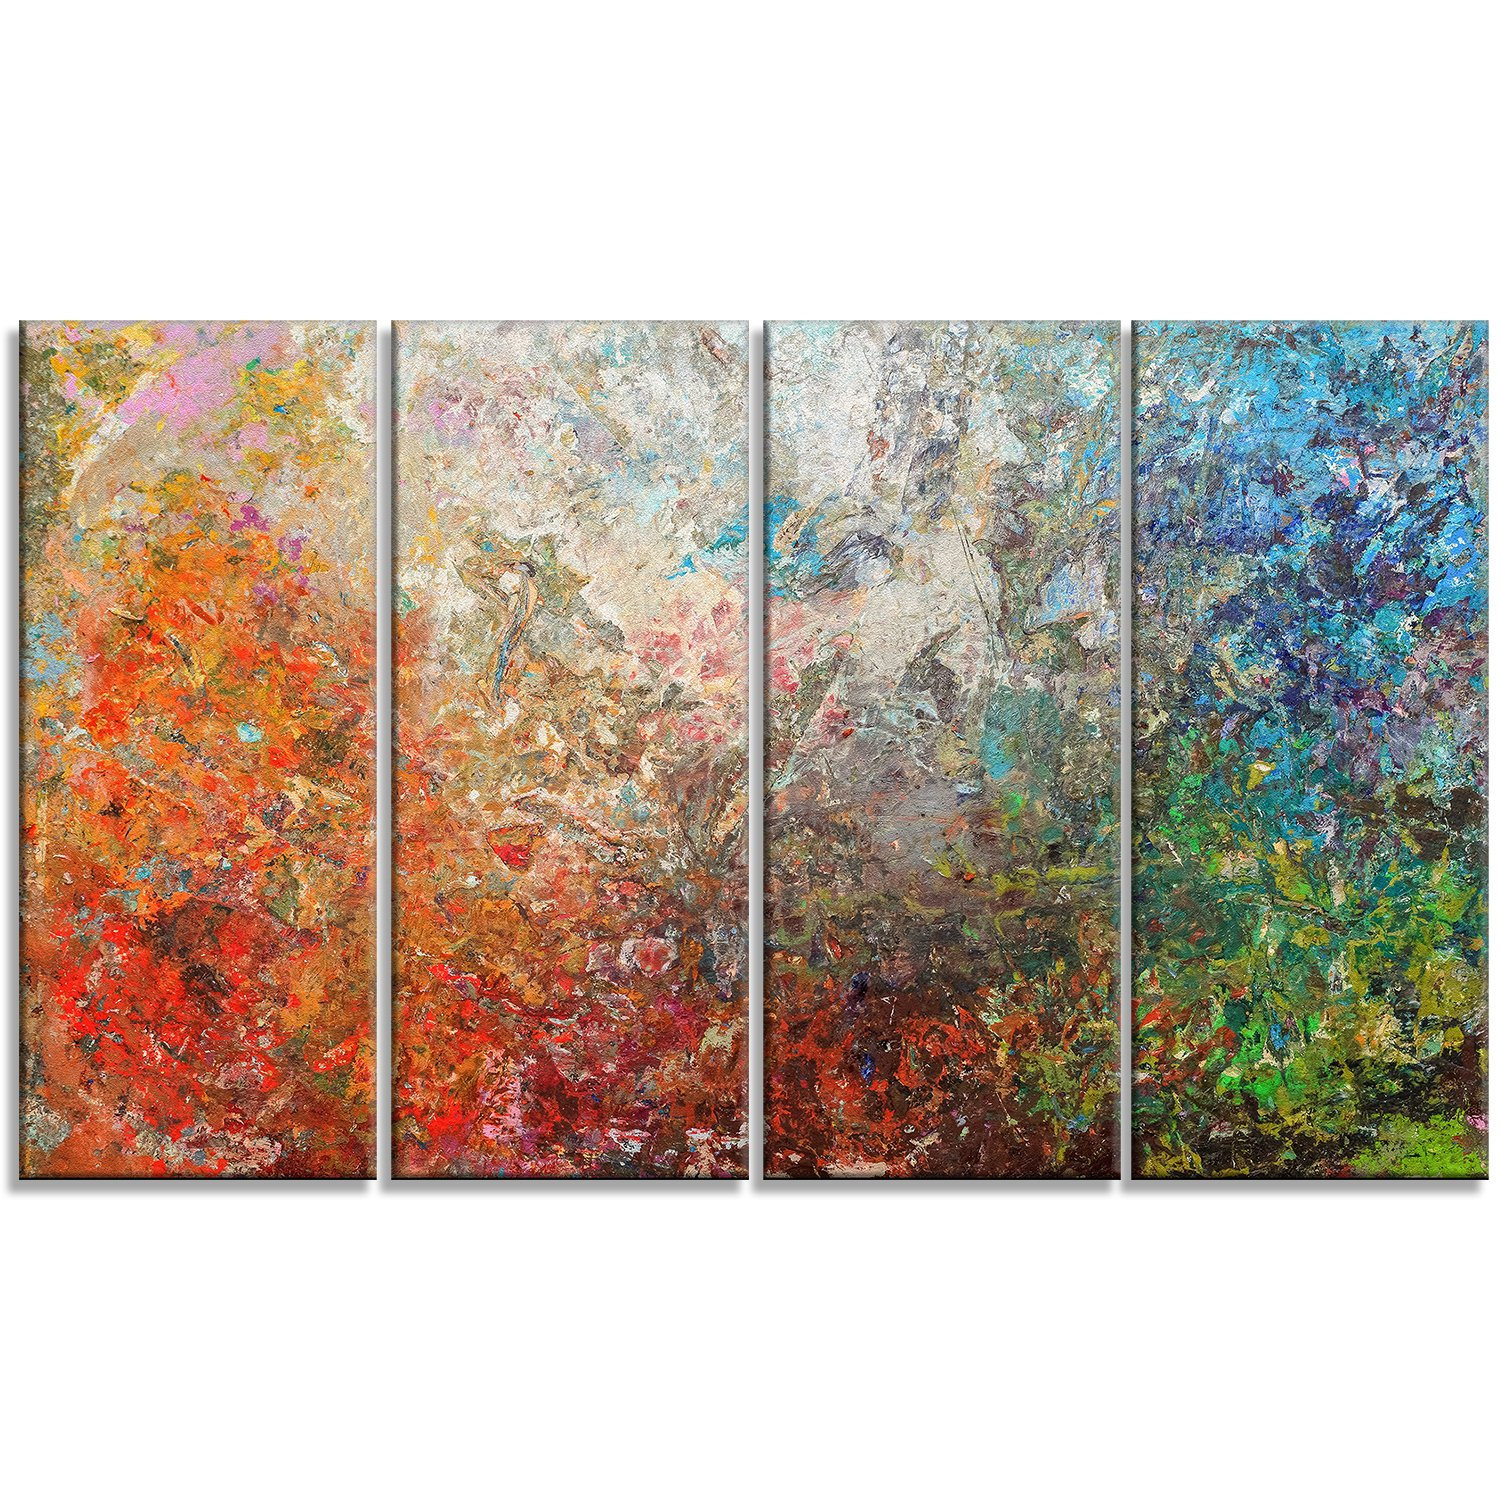 Designart PT6548-271 4 Panel ''Board Stained Art Abstract'' Canvas Art Print, Orange, 48x28'' by Design Art